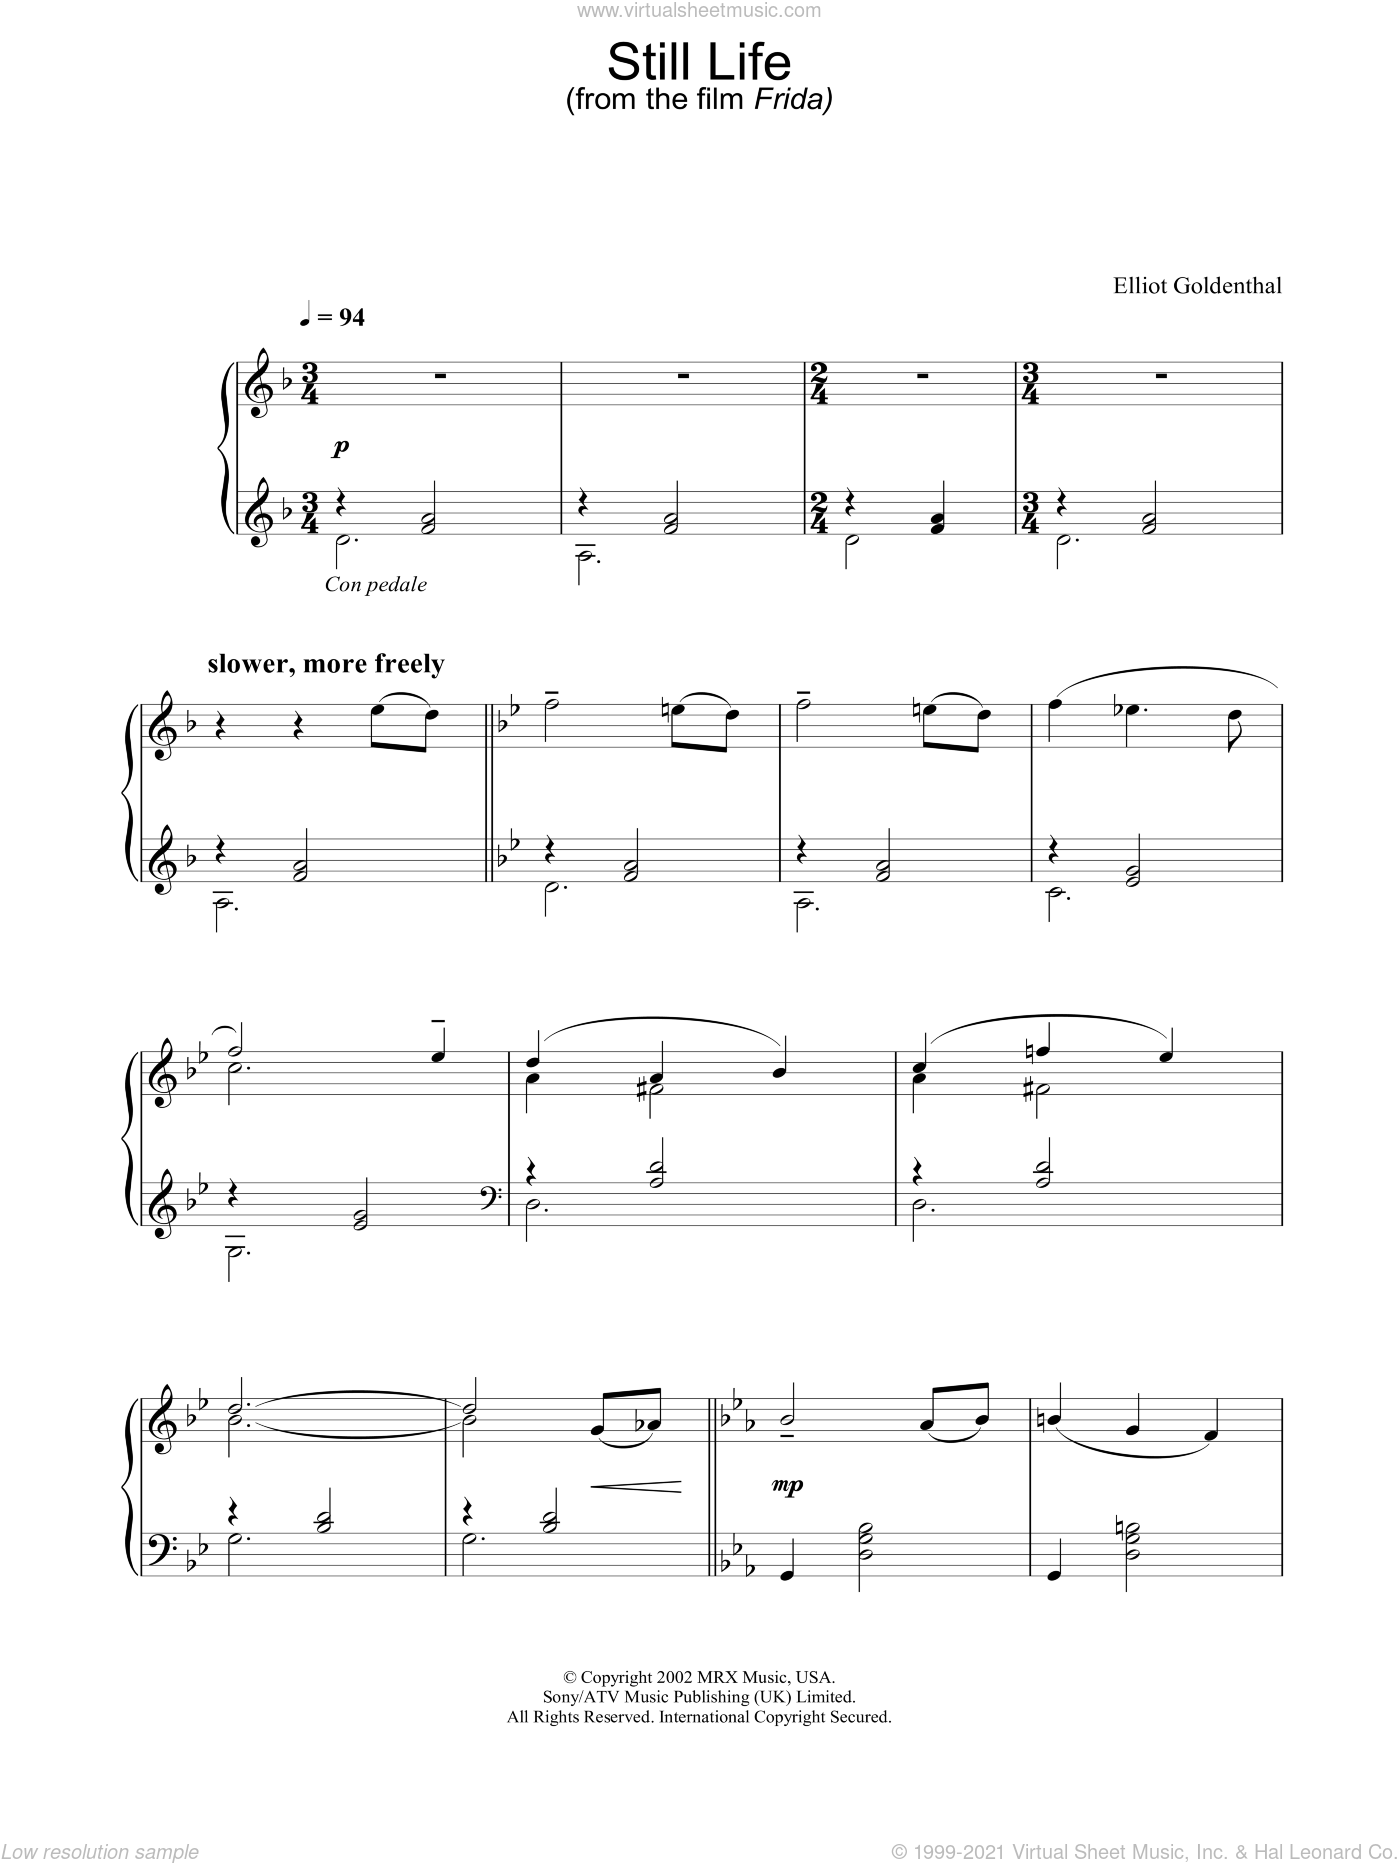 Still Life sheet music for piano solo by Elliot Goldenthal